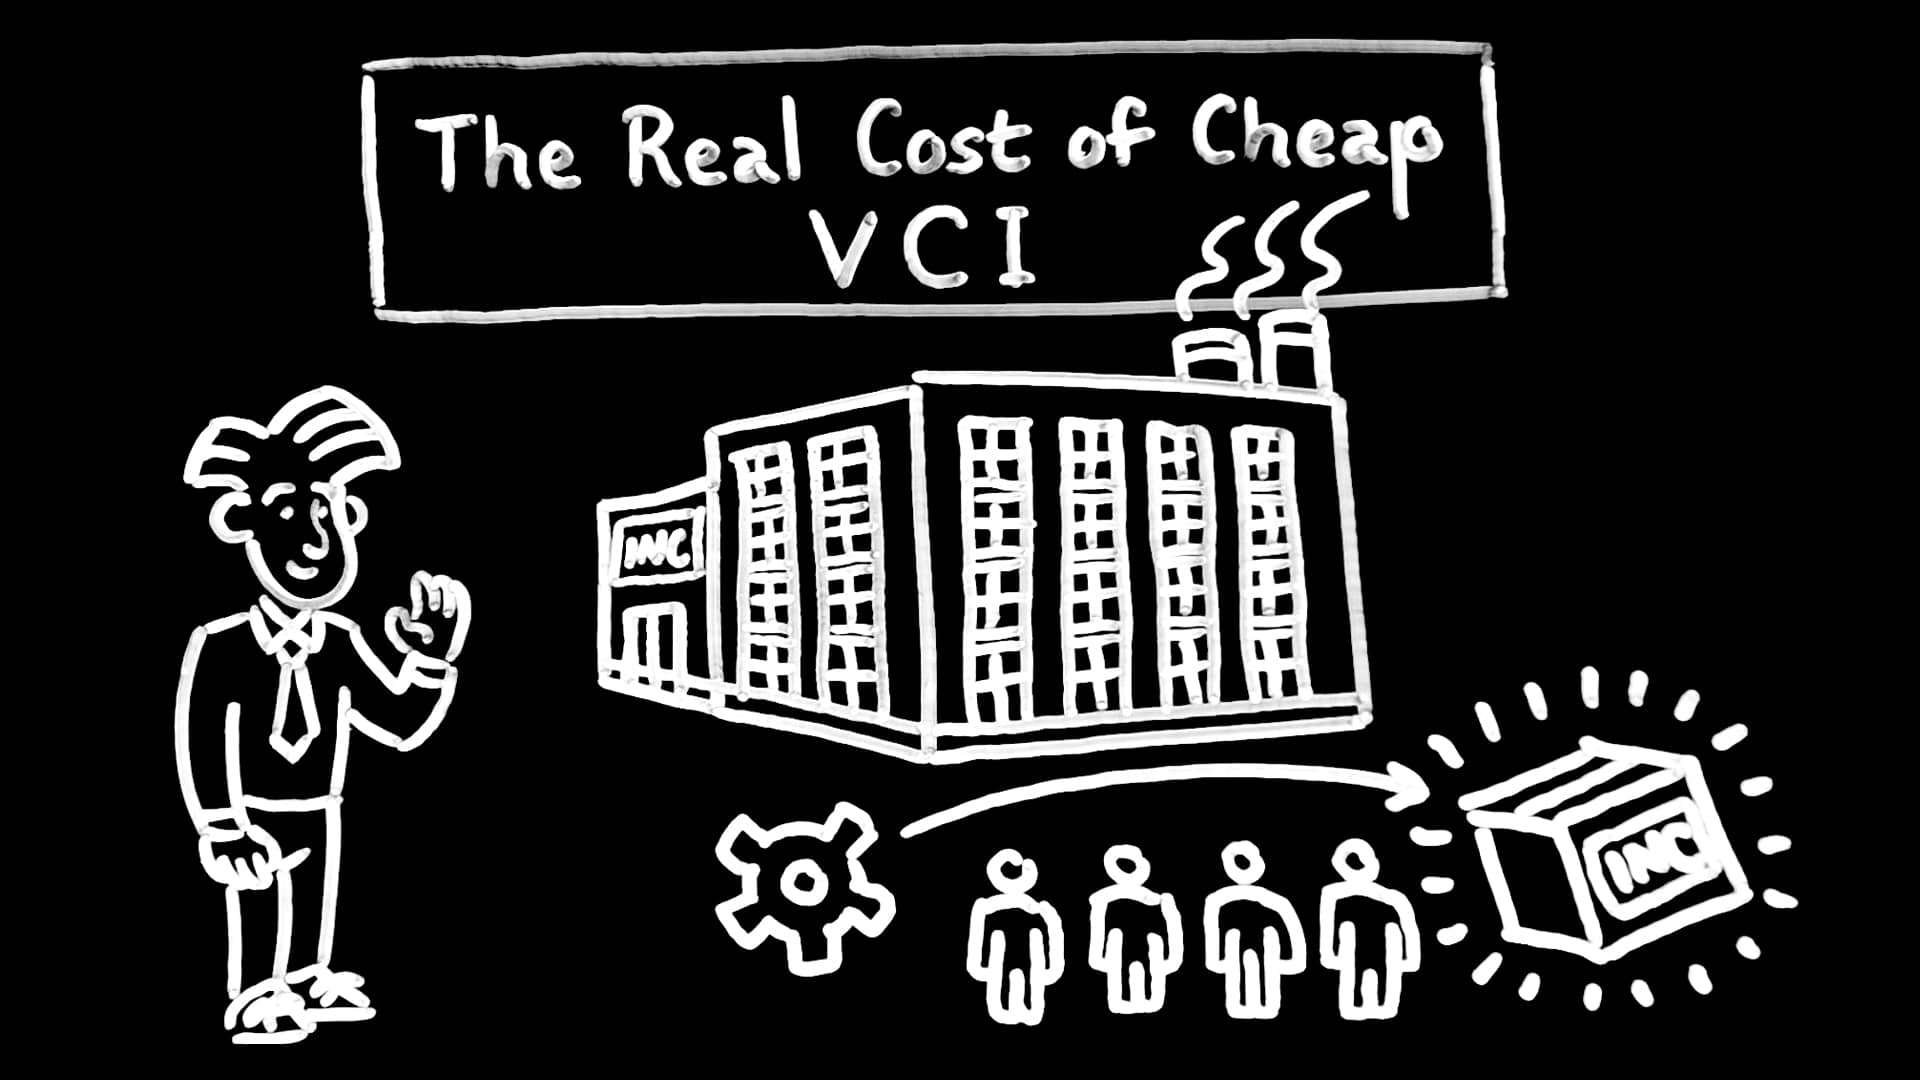 Real Cost of Cheap VCI